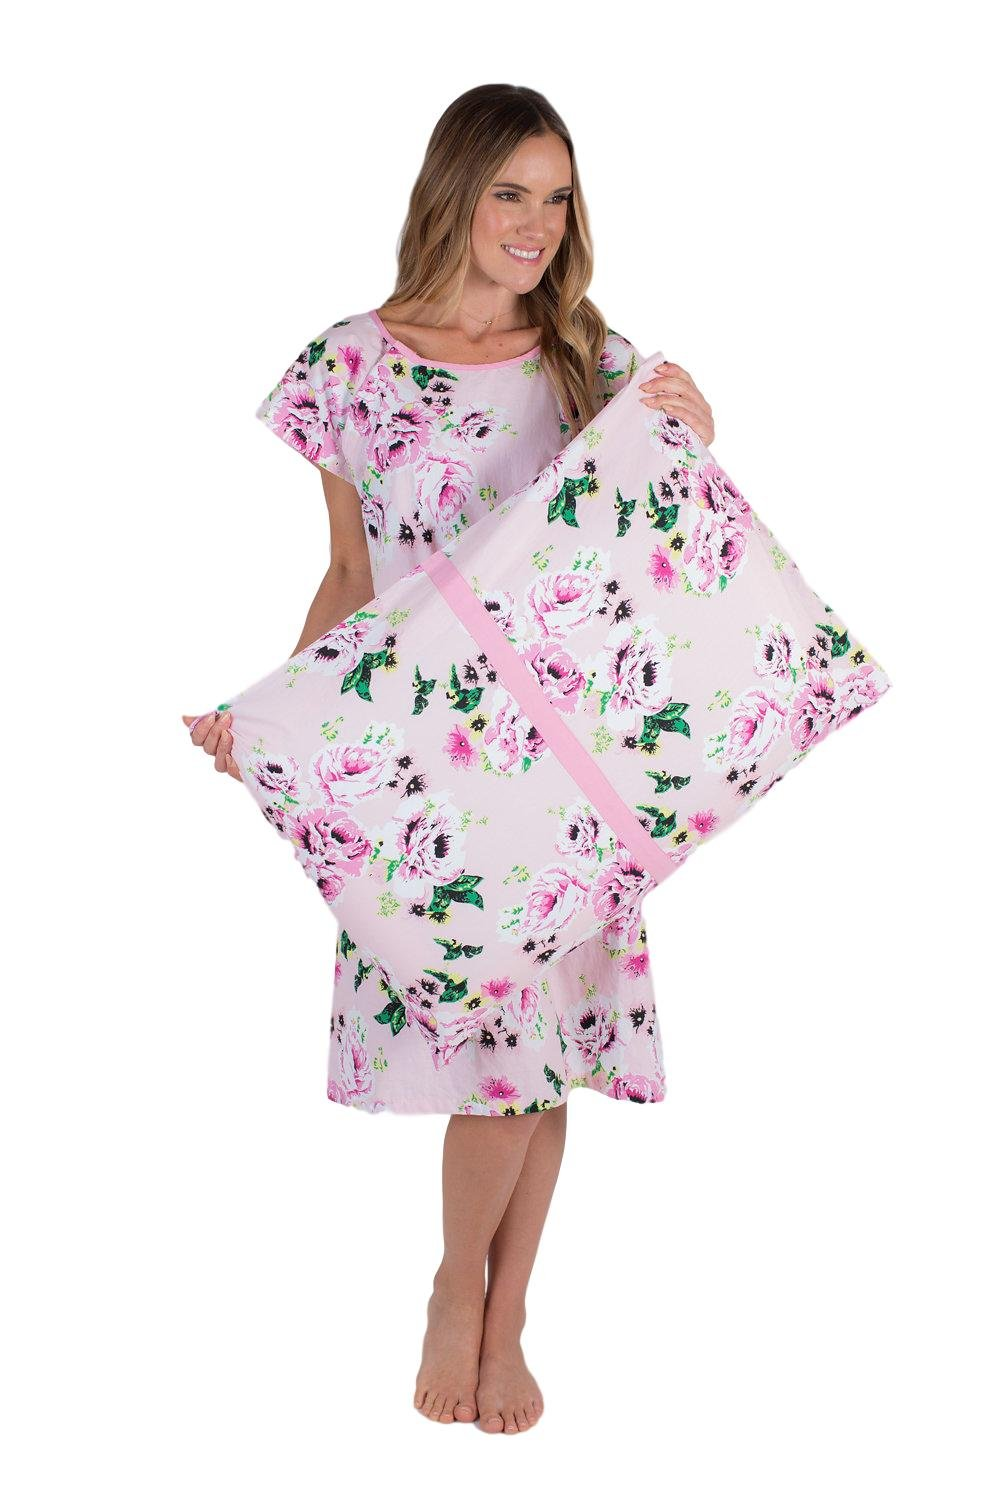 Gownies - Labor and Delivery Maternity Hospital Gown and Pillowcase Set, Hospital Bag Must Have, Best (Small/Medium, Amelia)